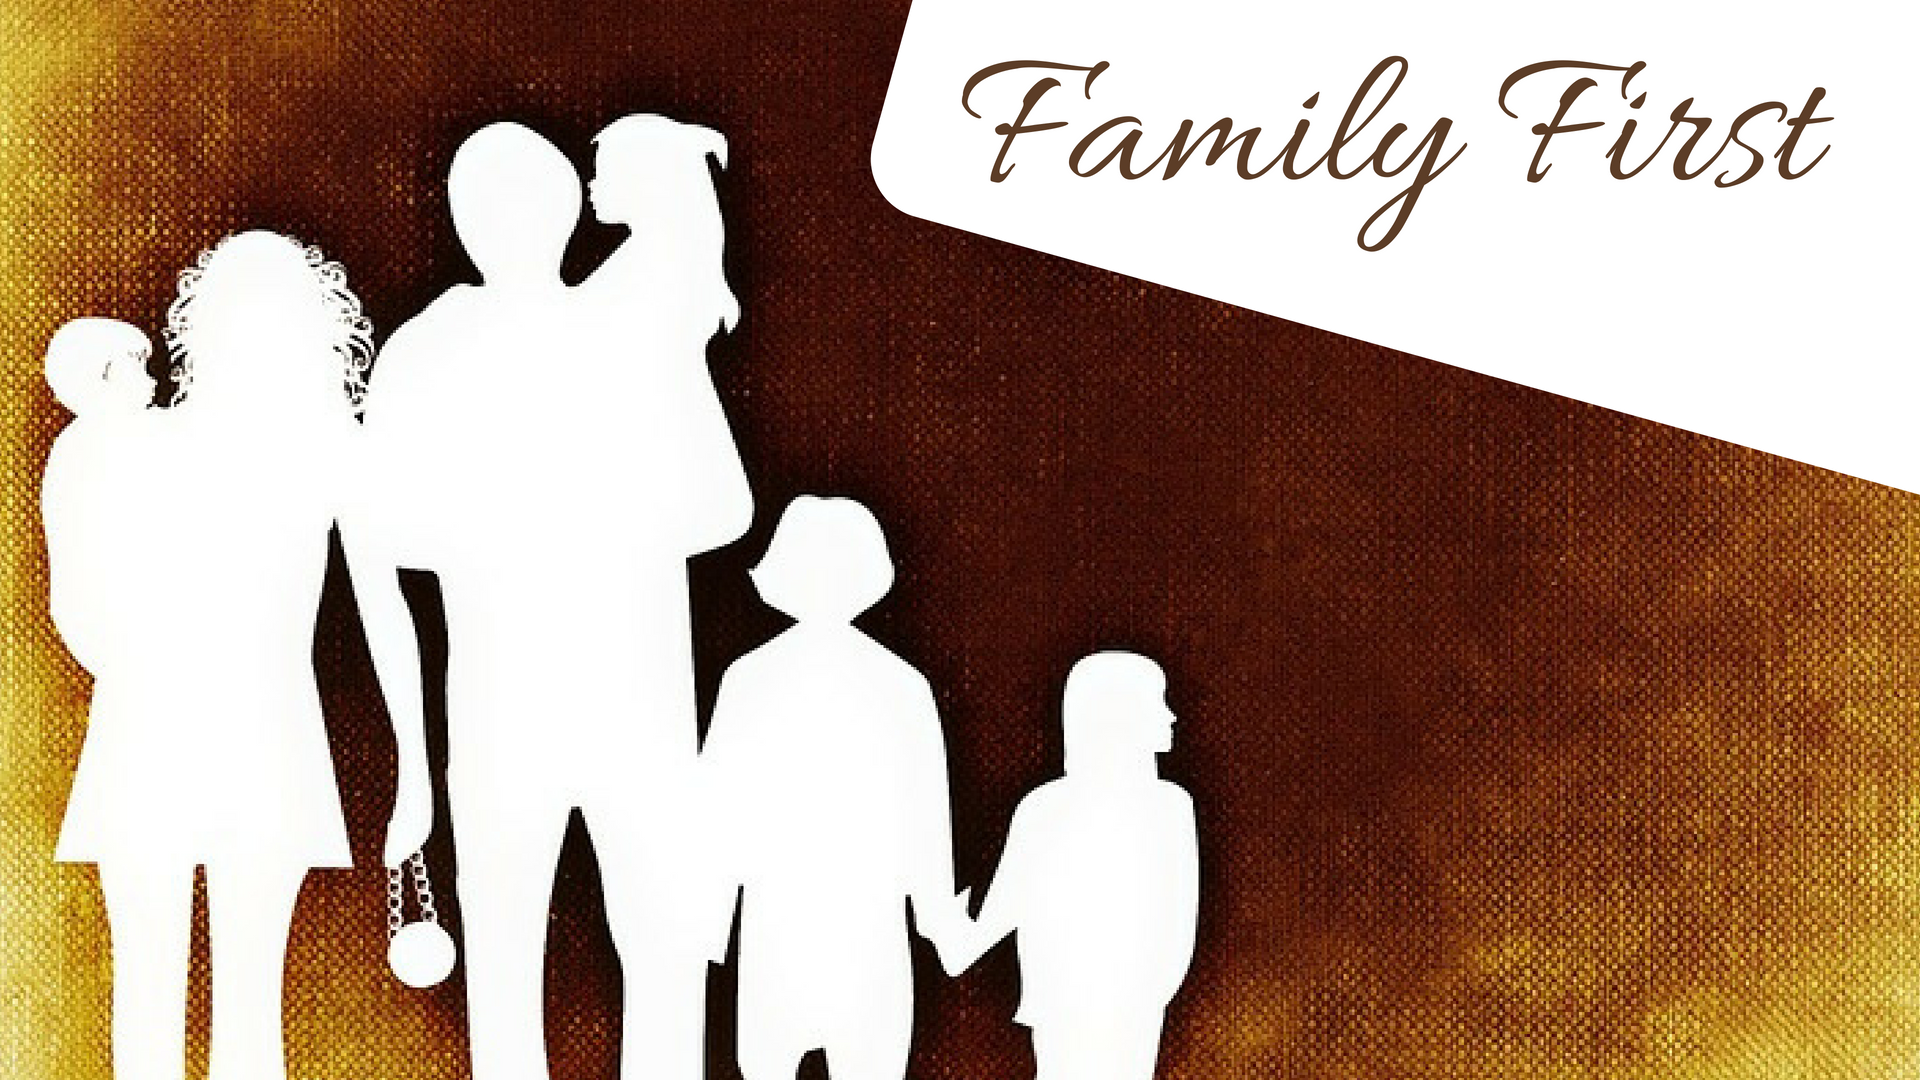 family First - Image of family sketch on a canvas